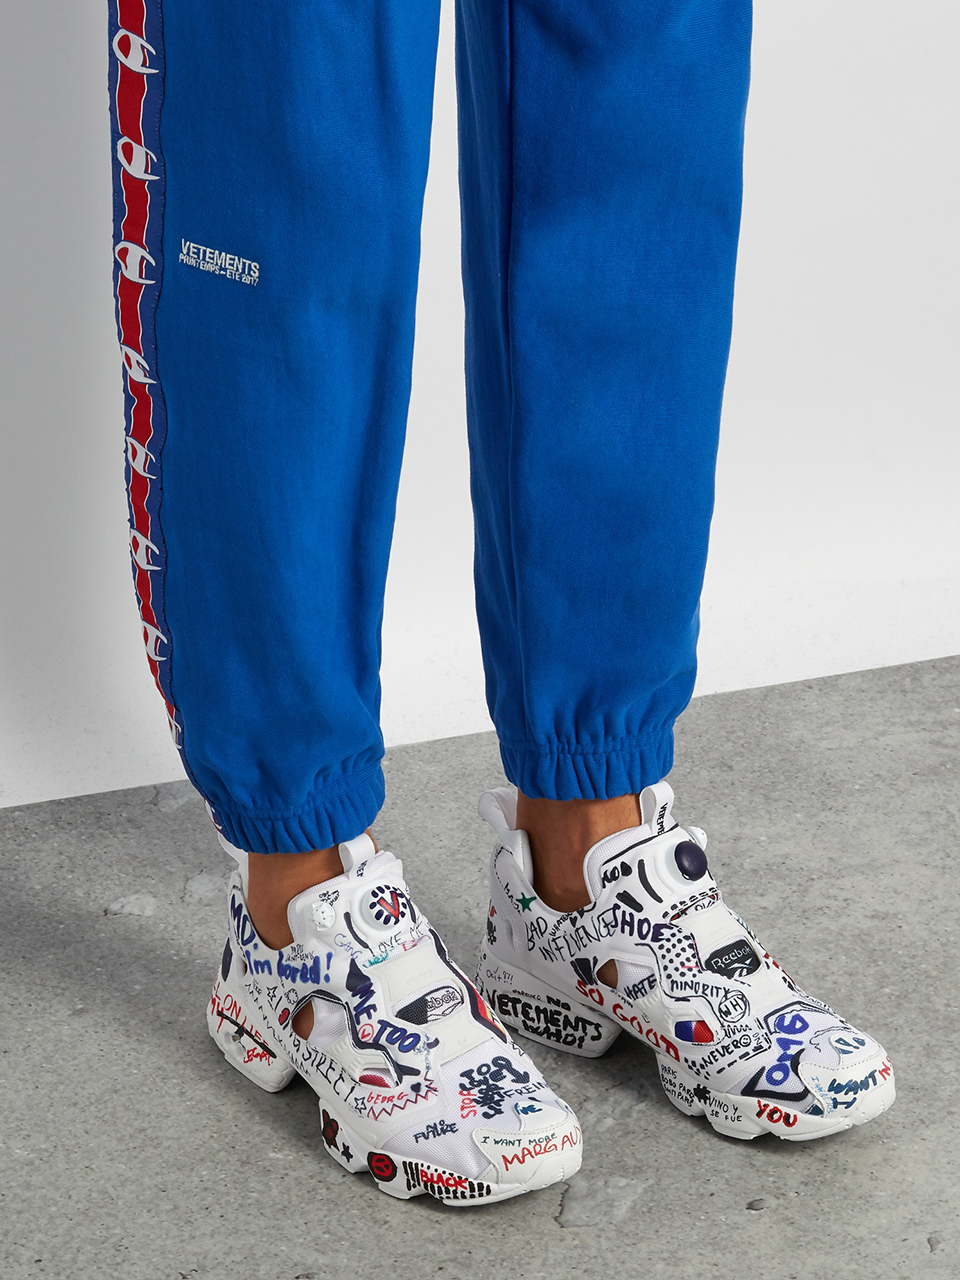 Vetements x Reebok Instapump Fury